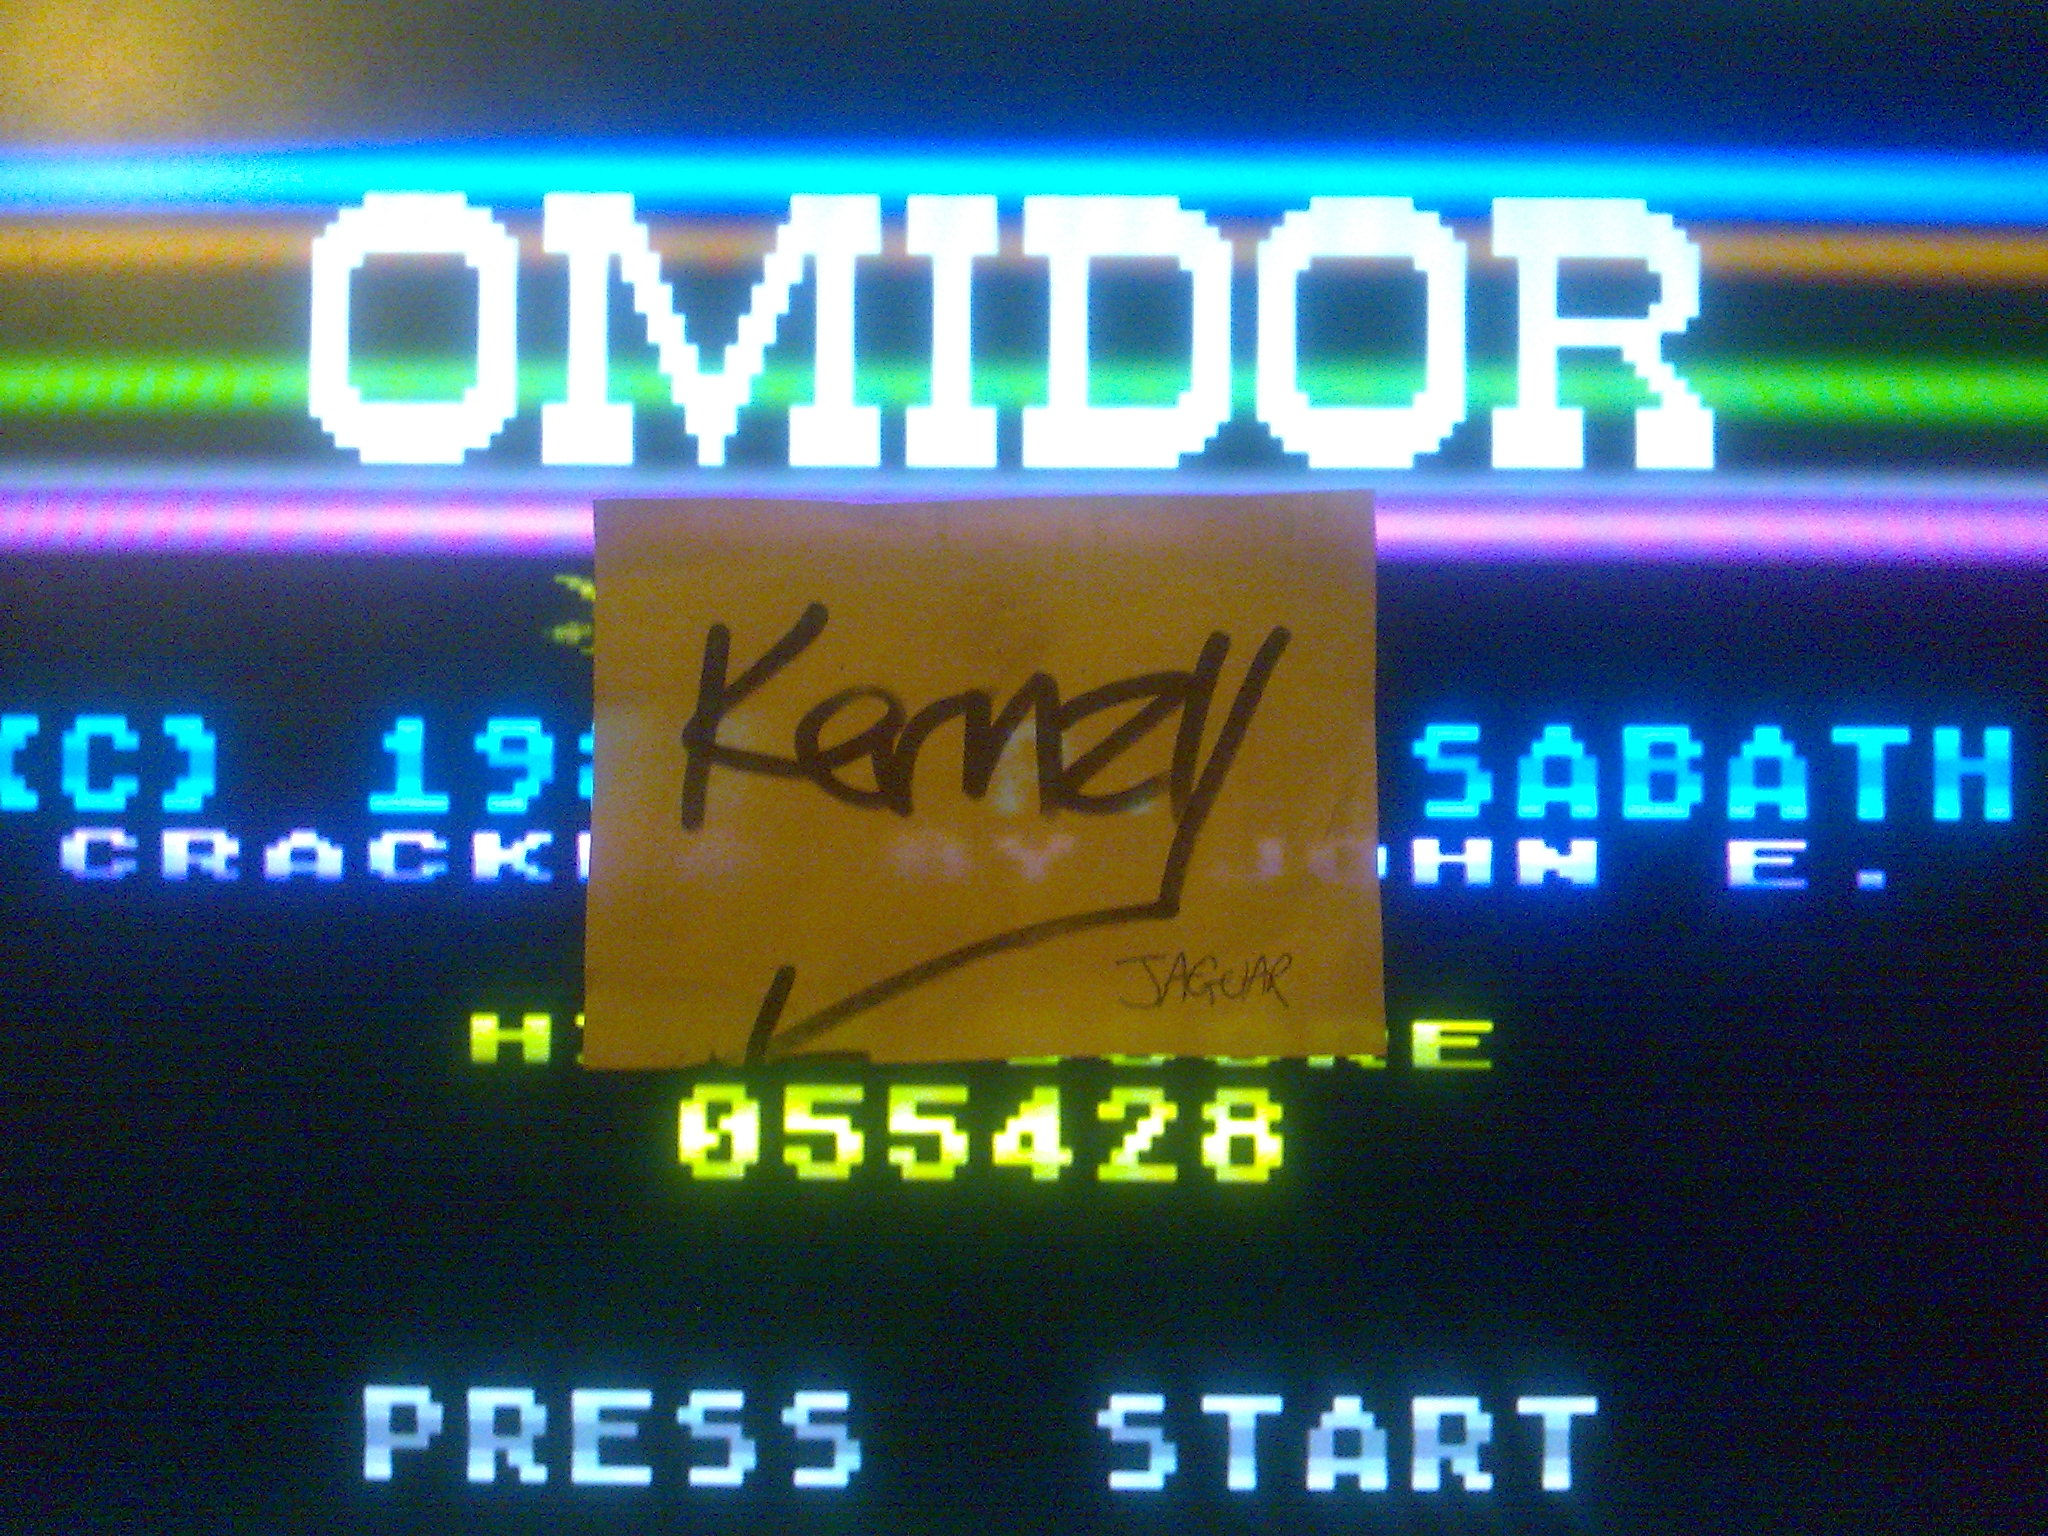 kernzy: Omidor (Atari 400/800/XL/XE Emulated) 55,428 points on 2014-10-17 01:12:21